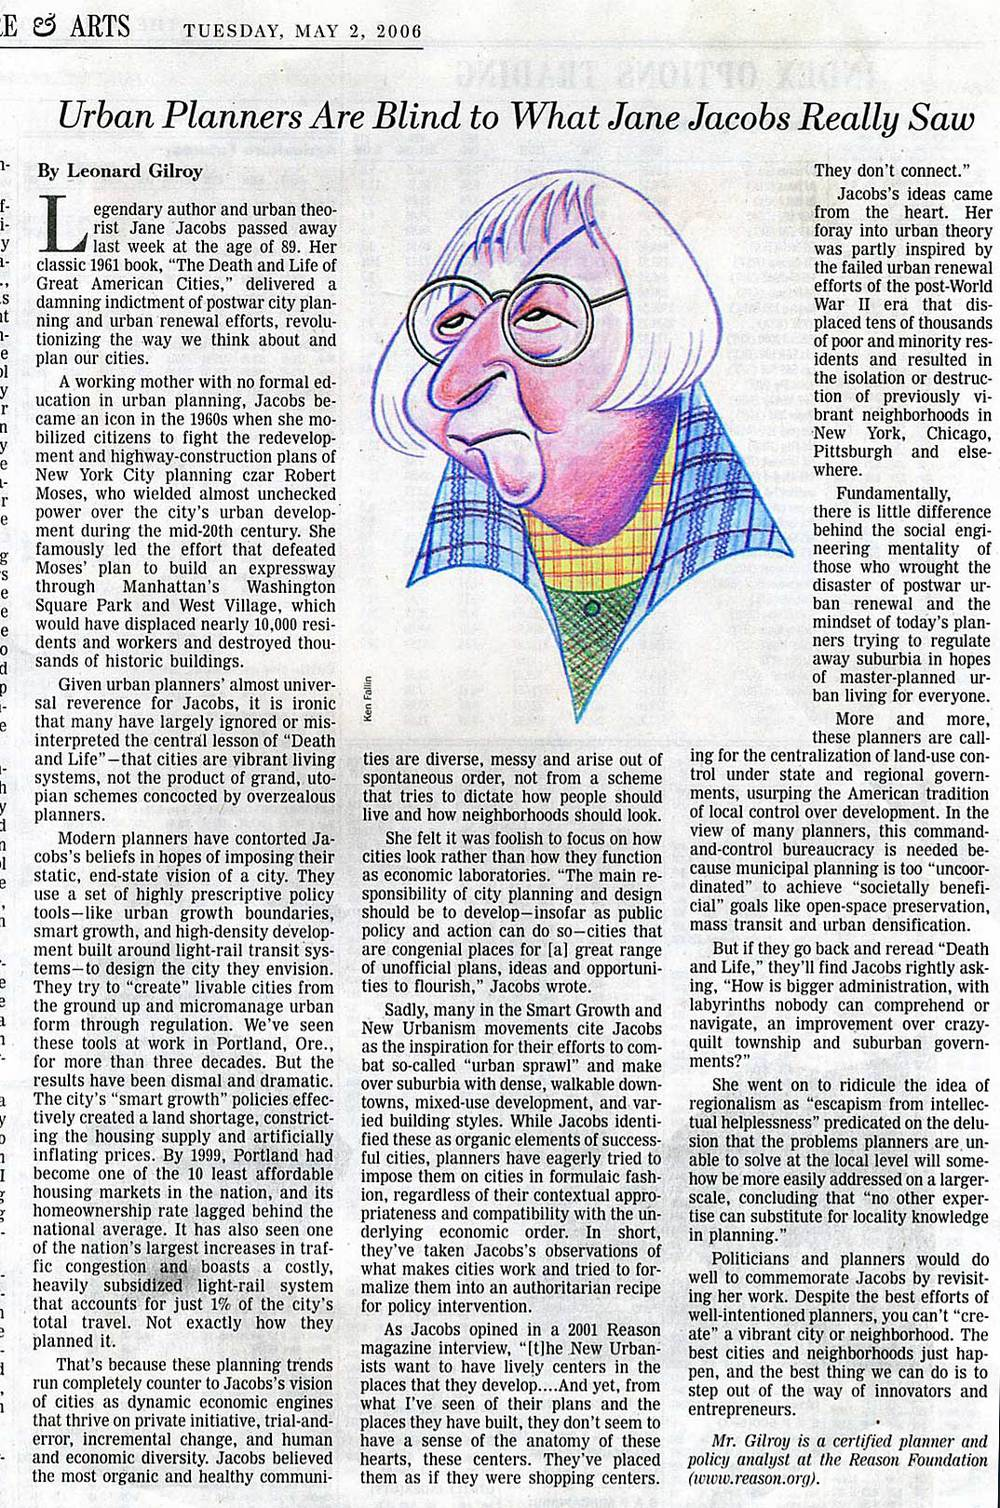 Leonard Gilroy, Urban Planners Are Blind to What Jane Jacobs Really Saw, The Wall Street Journal, 2006